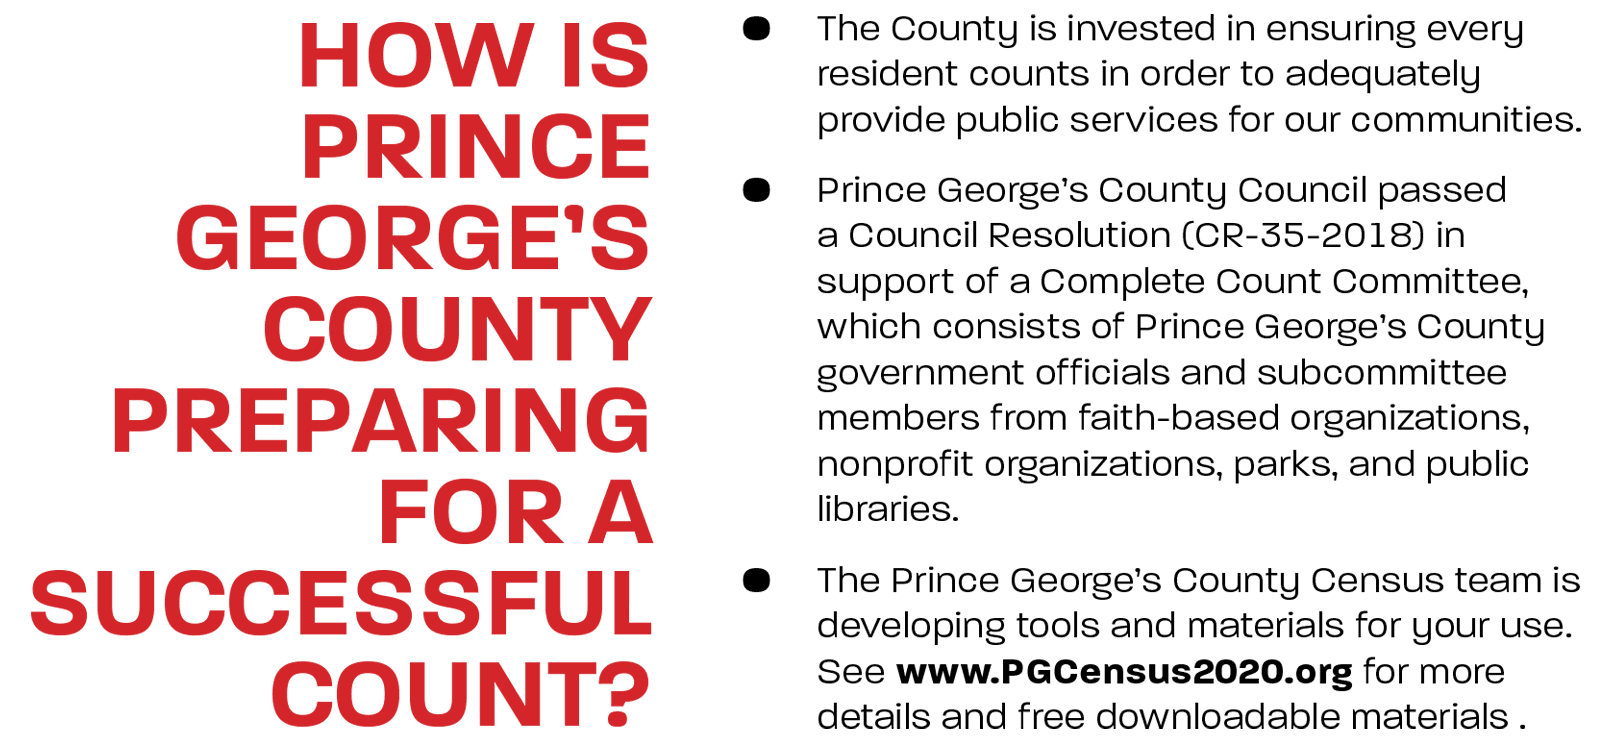 How is Prince George's County Preparing for a Successful Count?